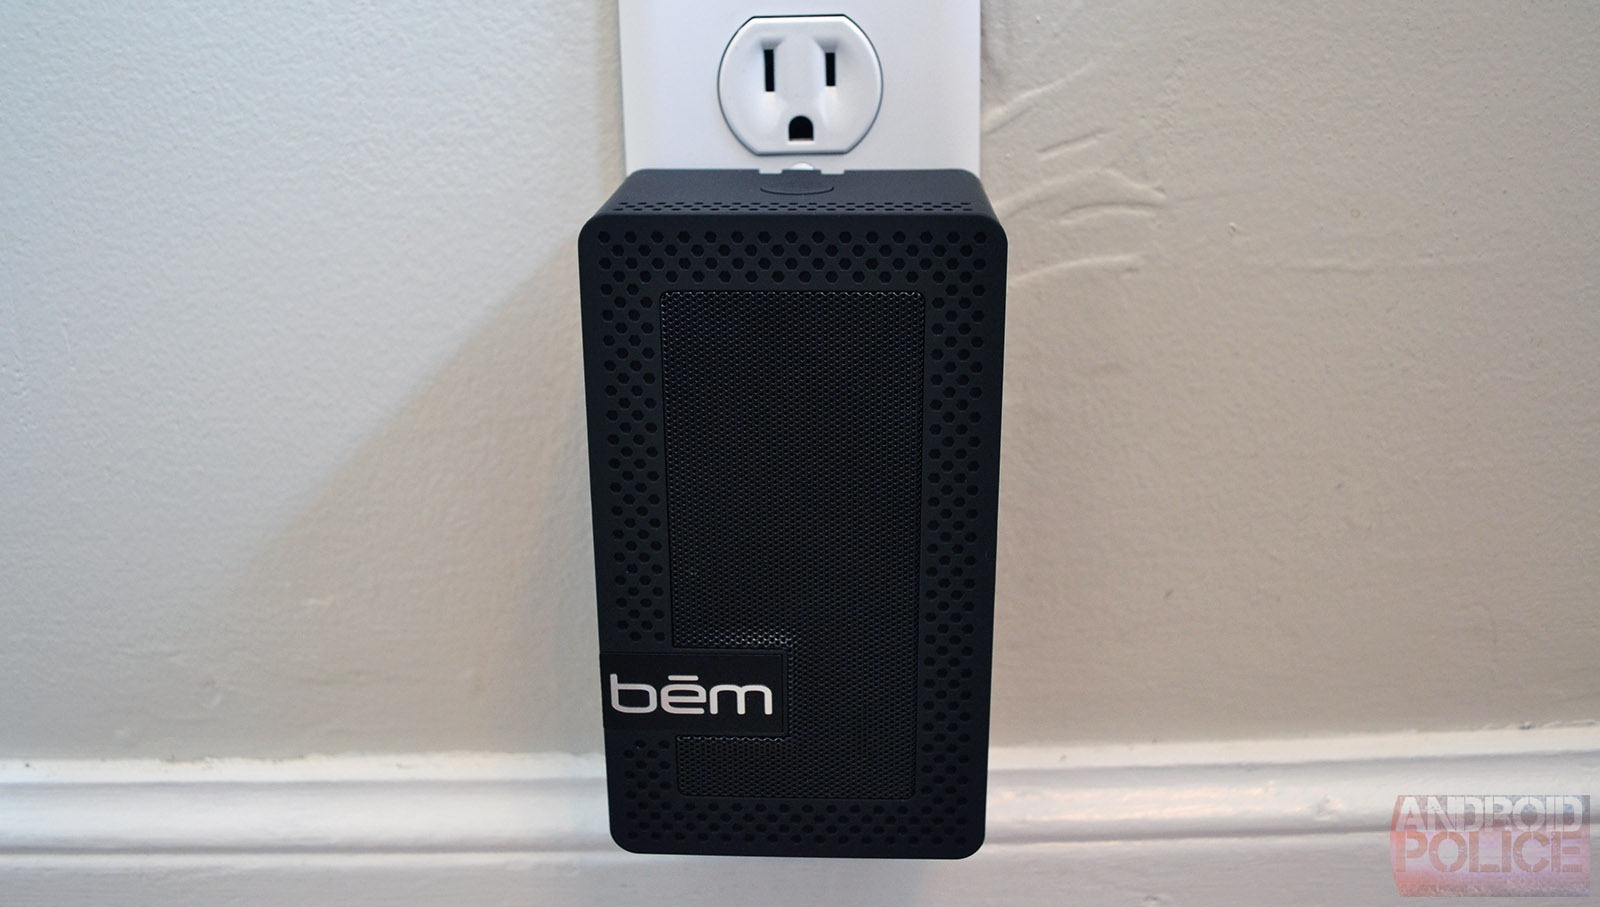 Bem Bluetooth Outlet Speaker Quick Review It Probably